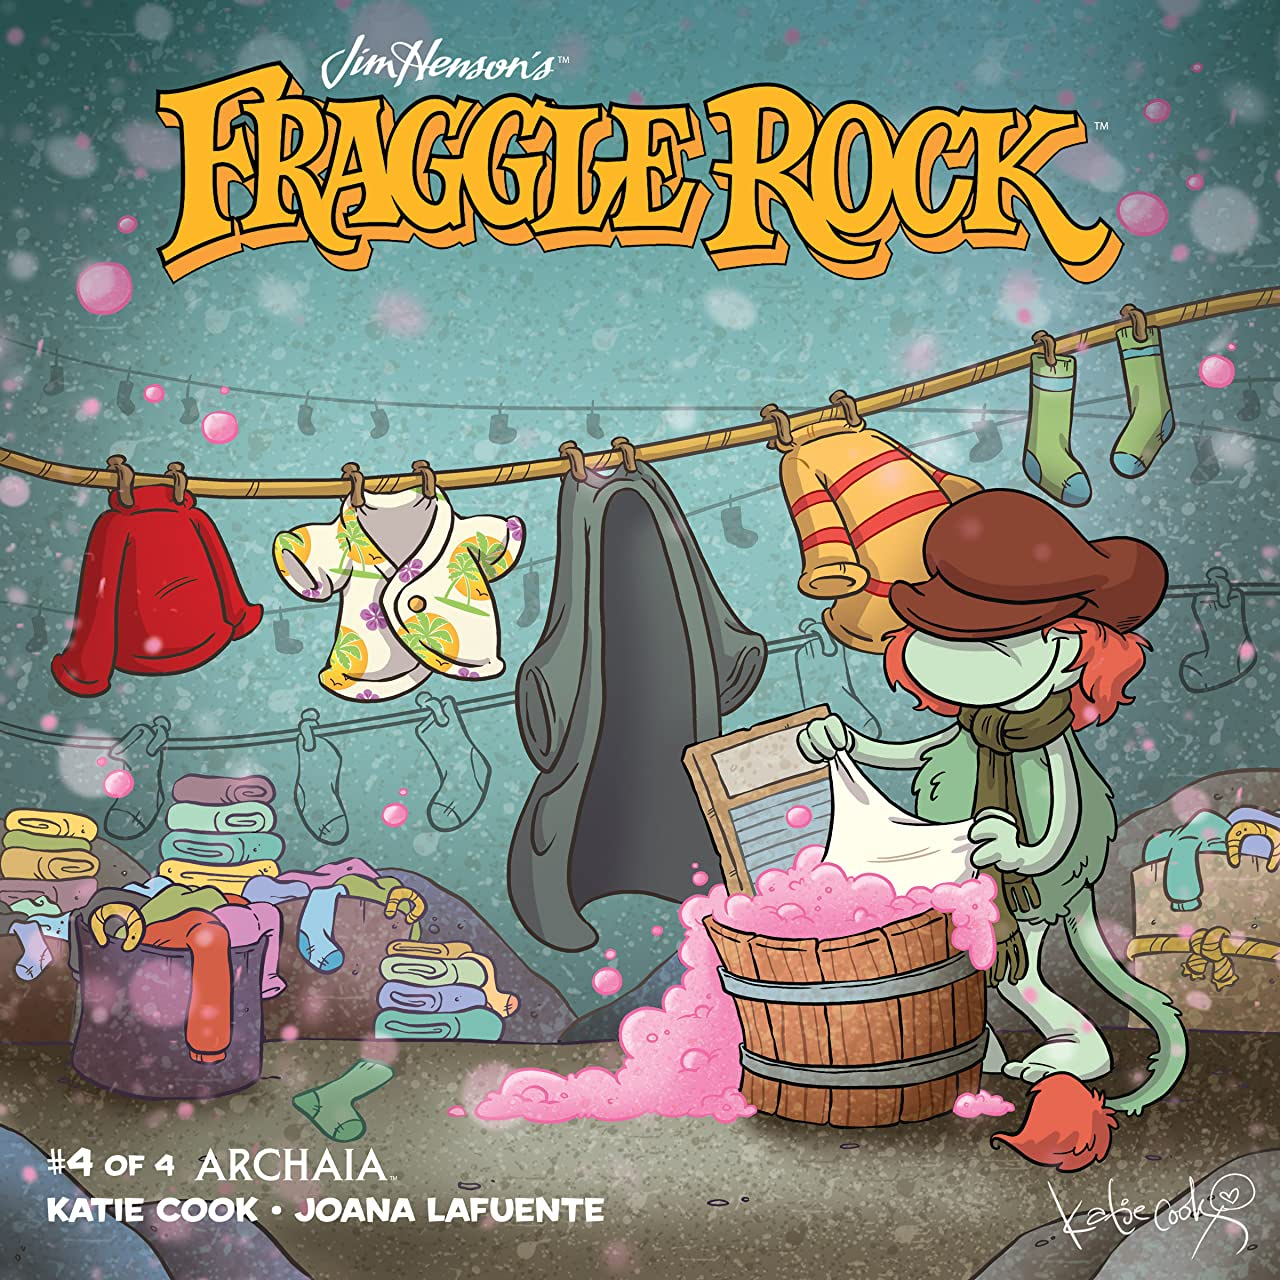 Jim Henson's Fraggle Rock (2018) #4 (of 4)